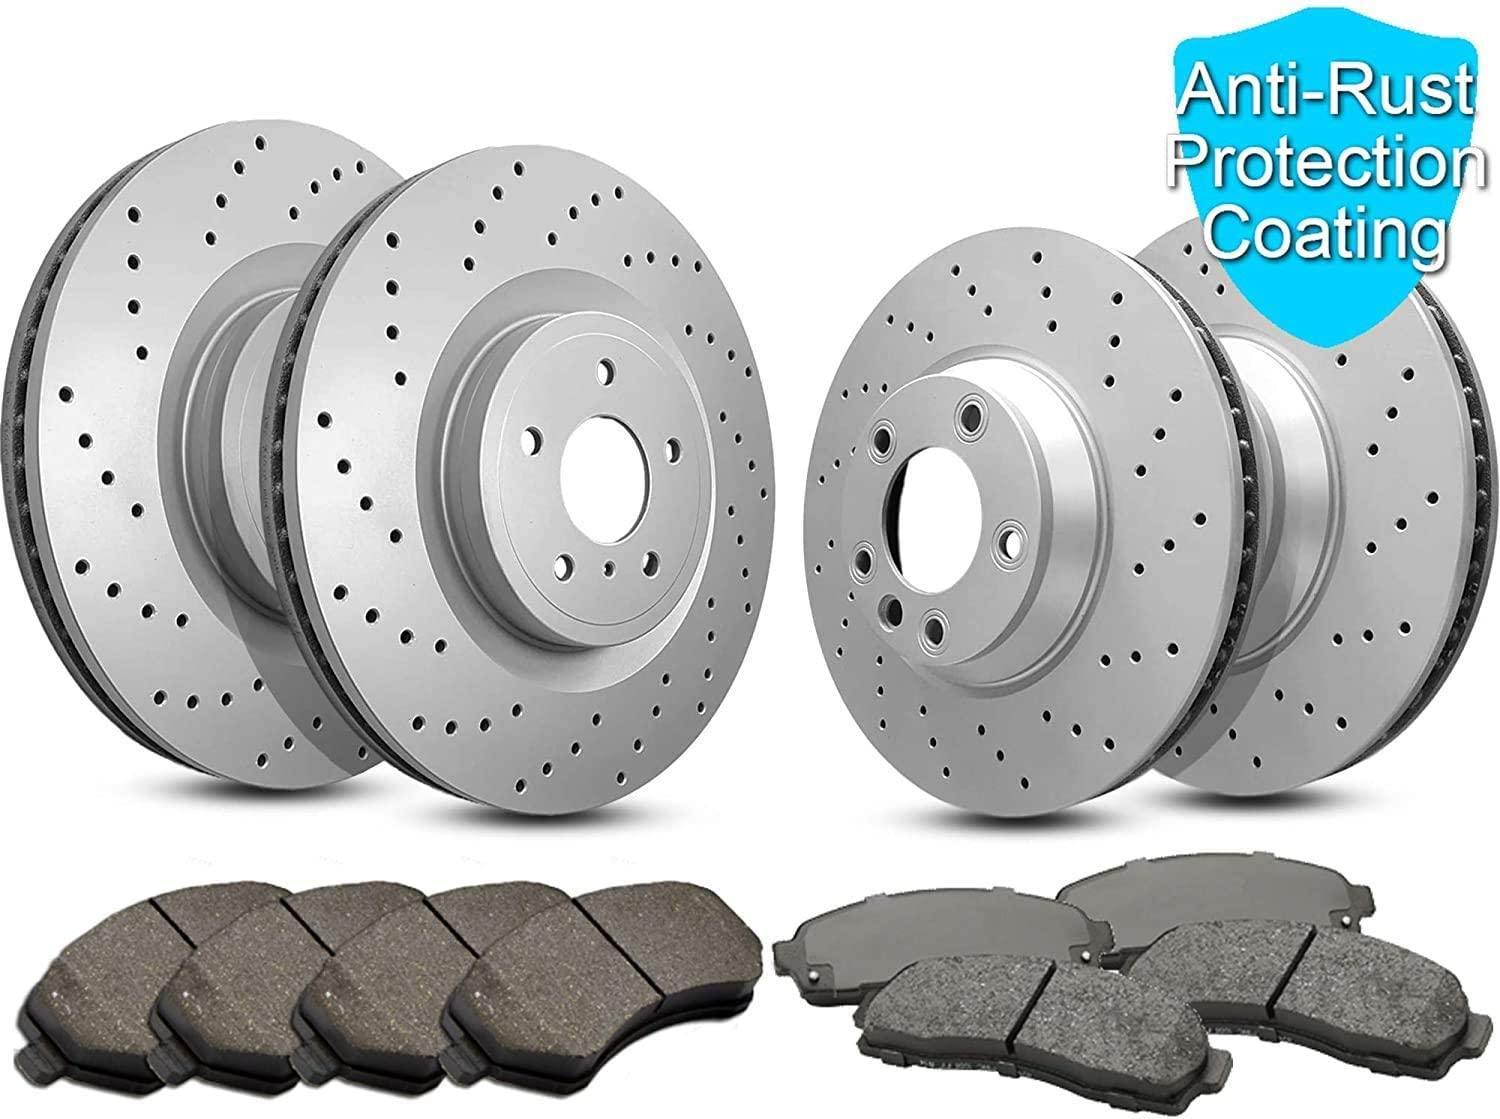 Front and Rear Magnum Max 59% OFF Cross Rotors Ceramic overseas Drilled Brake